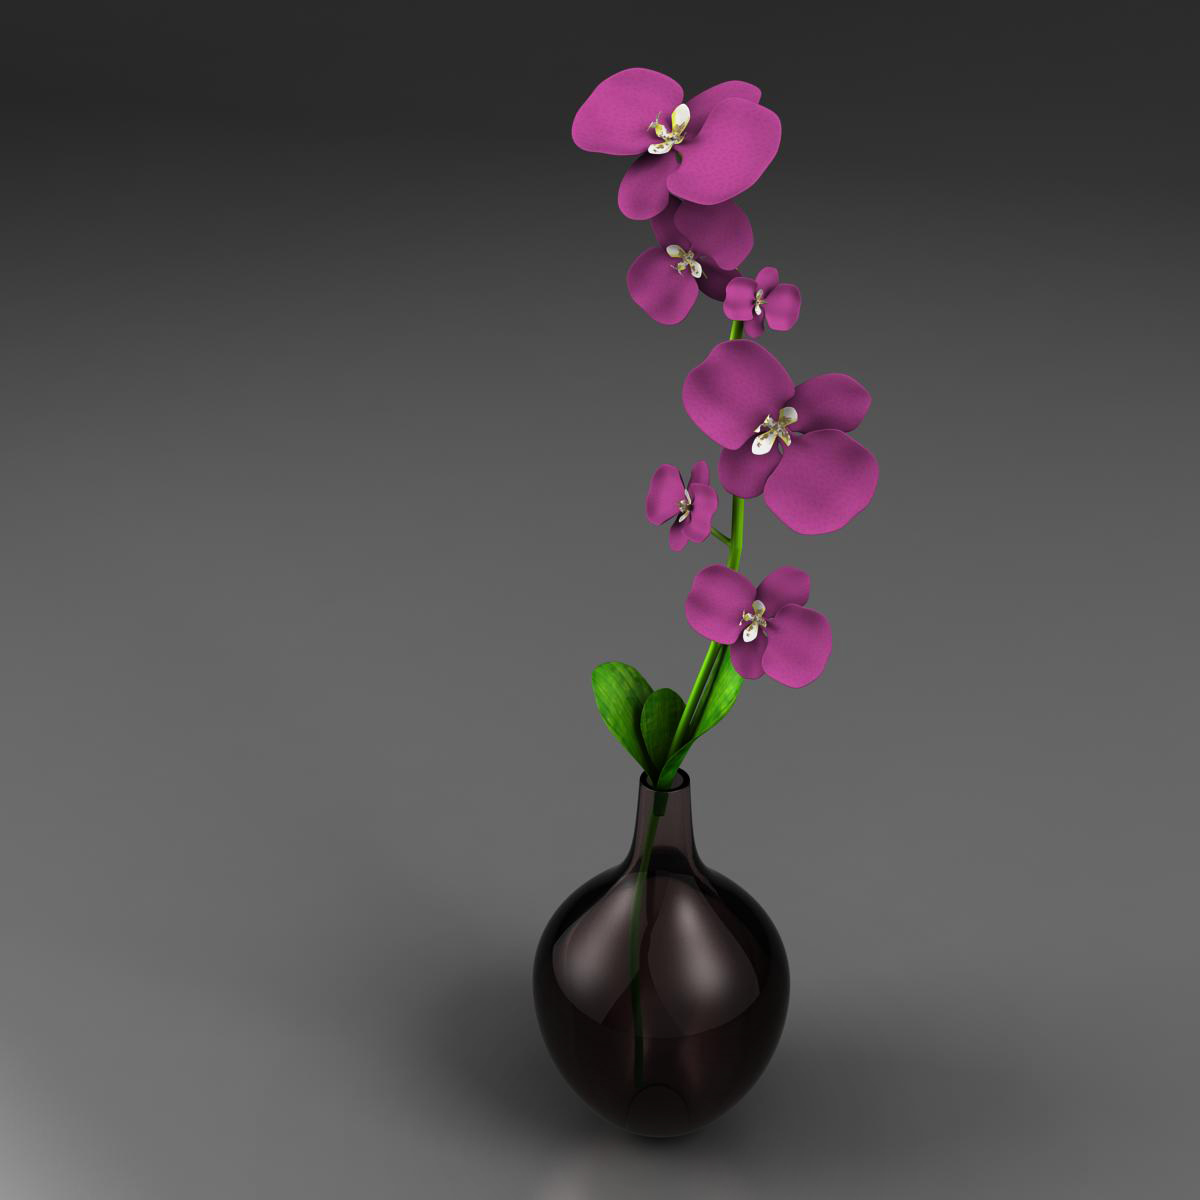 flower base 3d model 3ds max fbx ma mb obj 158095